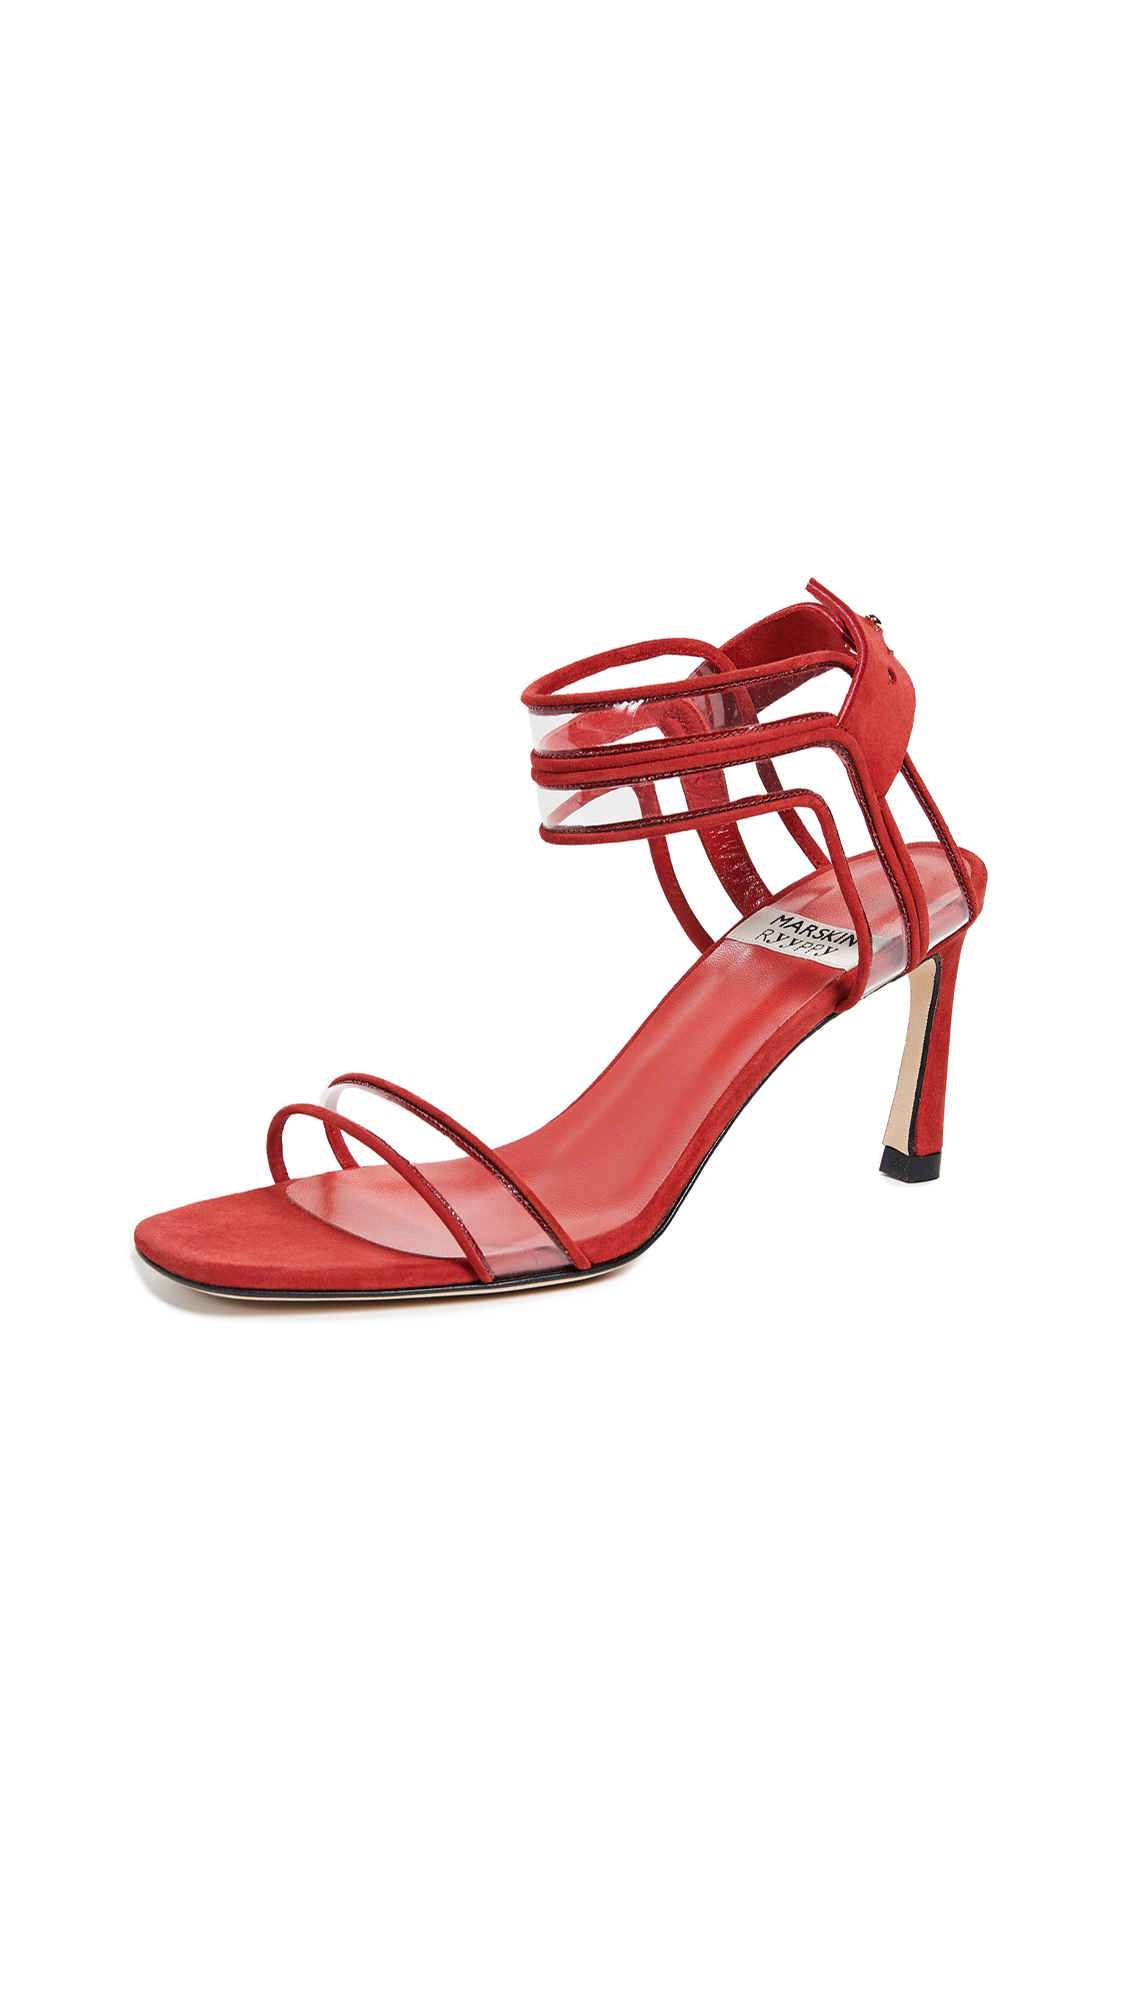 MARSKINRYYPPY Winona Sandals - Iron Red